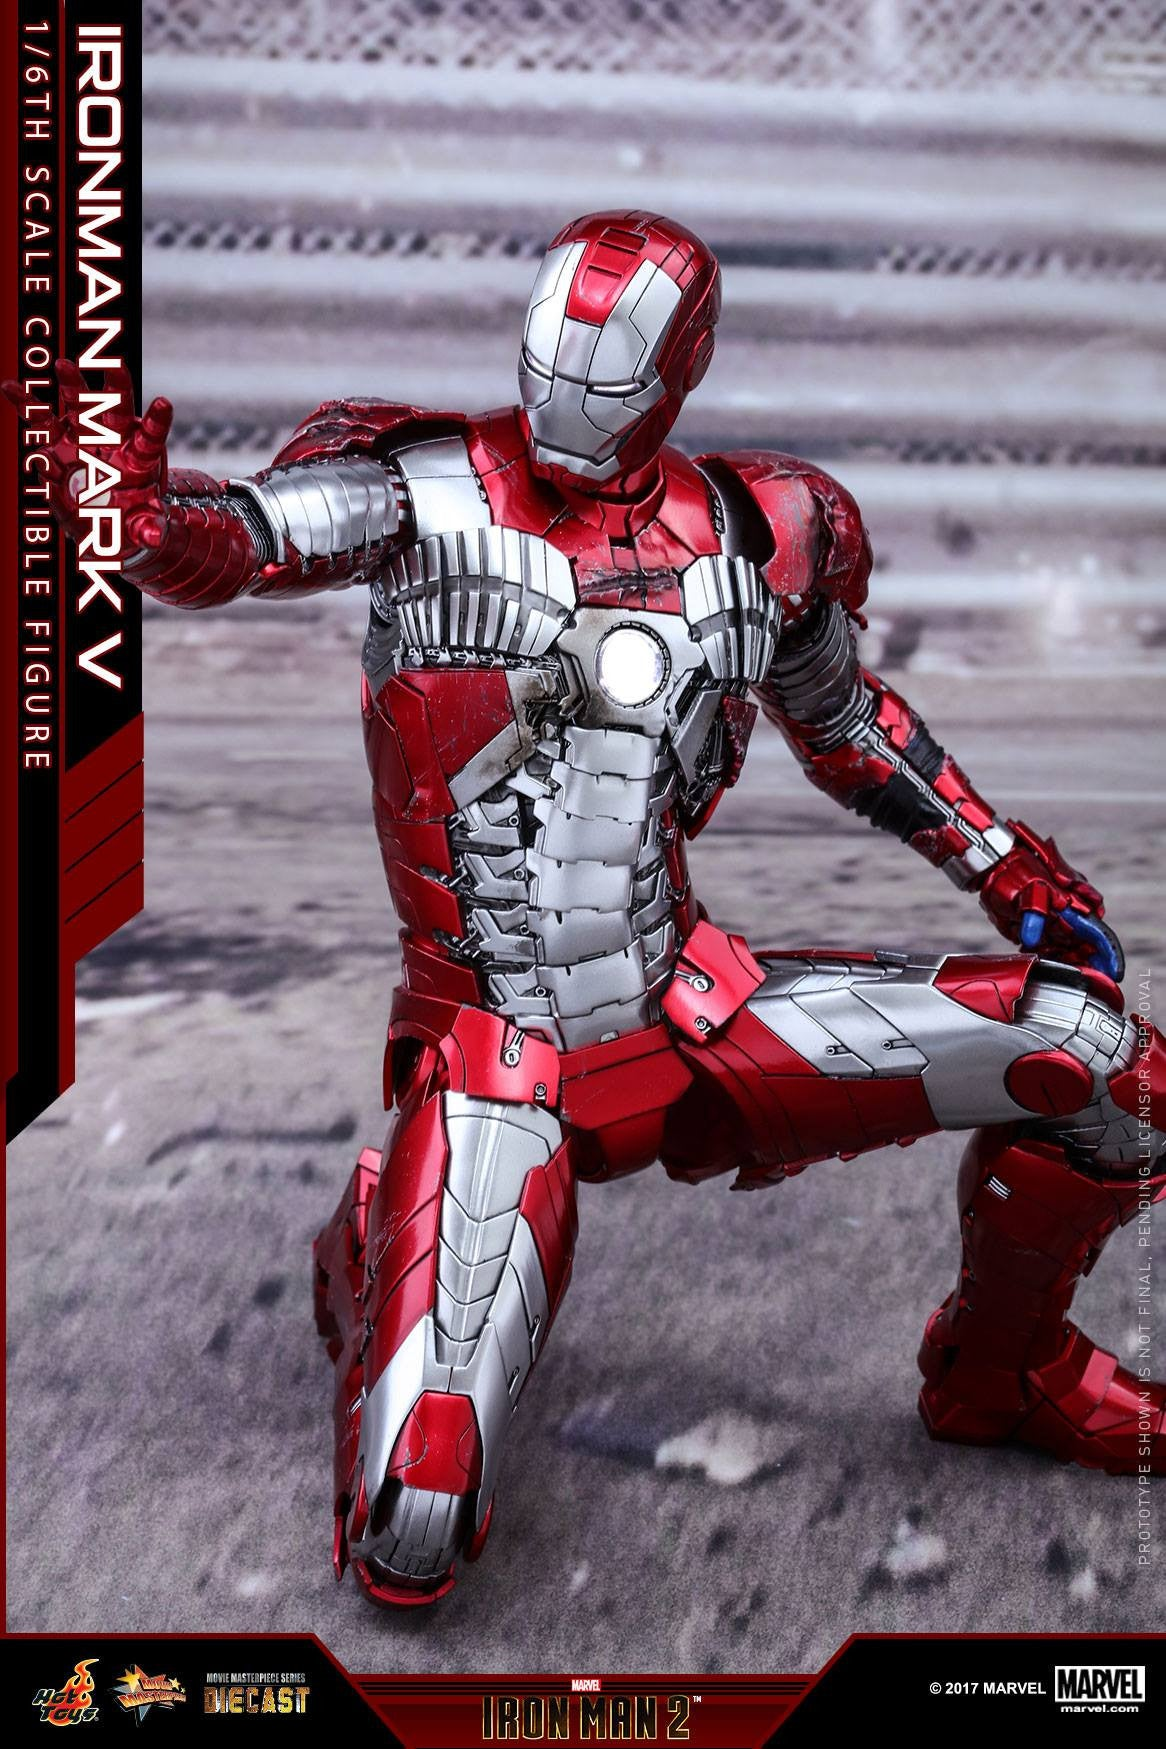 Hot Toys - MMS400D18 - Iron Man 2 - Mark V (DIECAST) - Marvelous Toys - 15